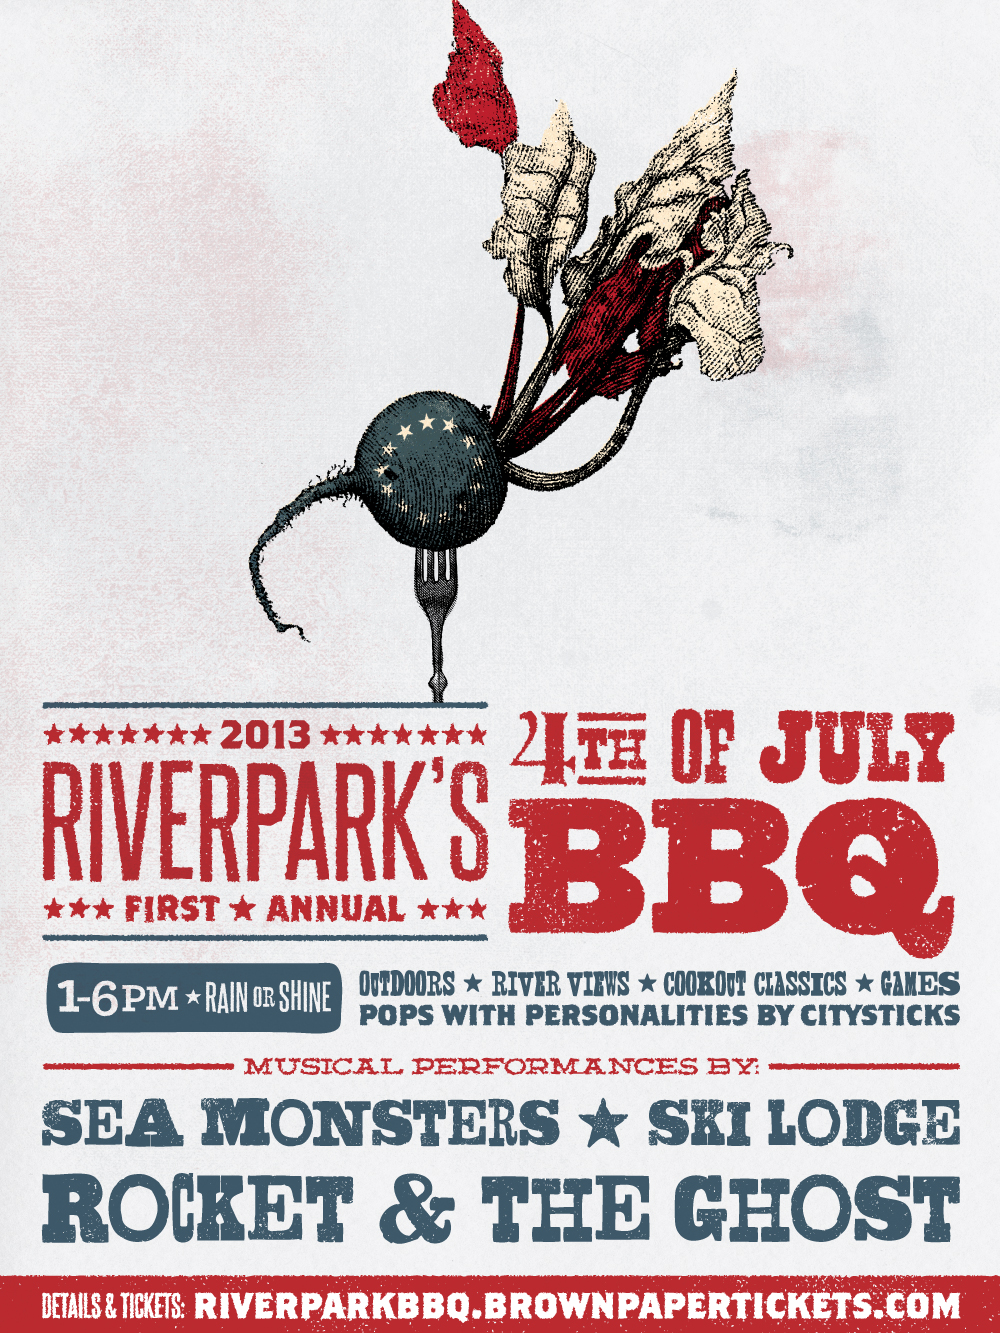 Riverpark's First Annual 4th of July BBQ!